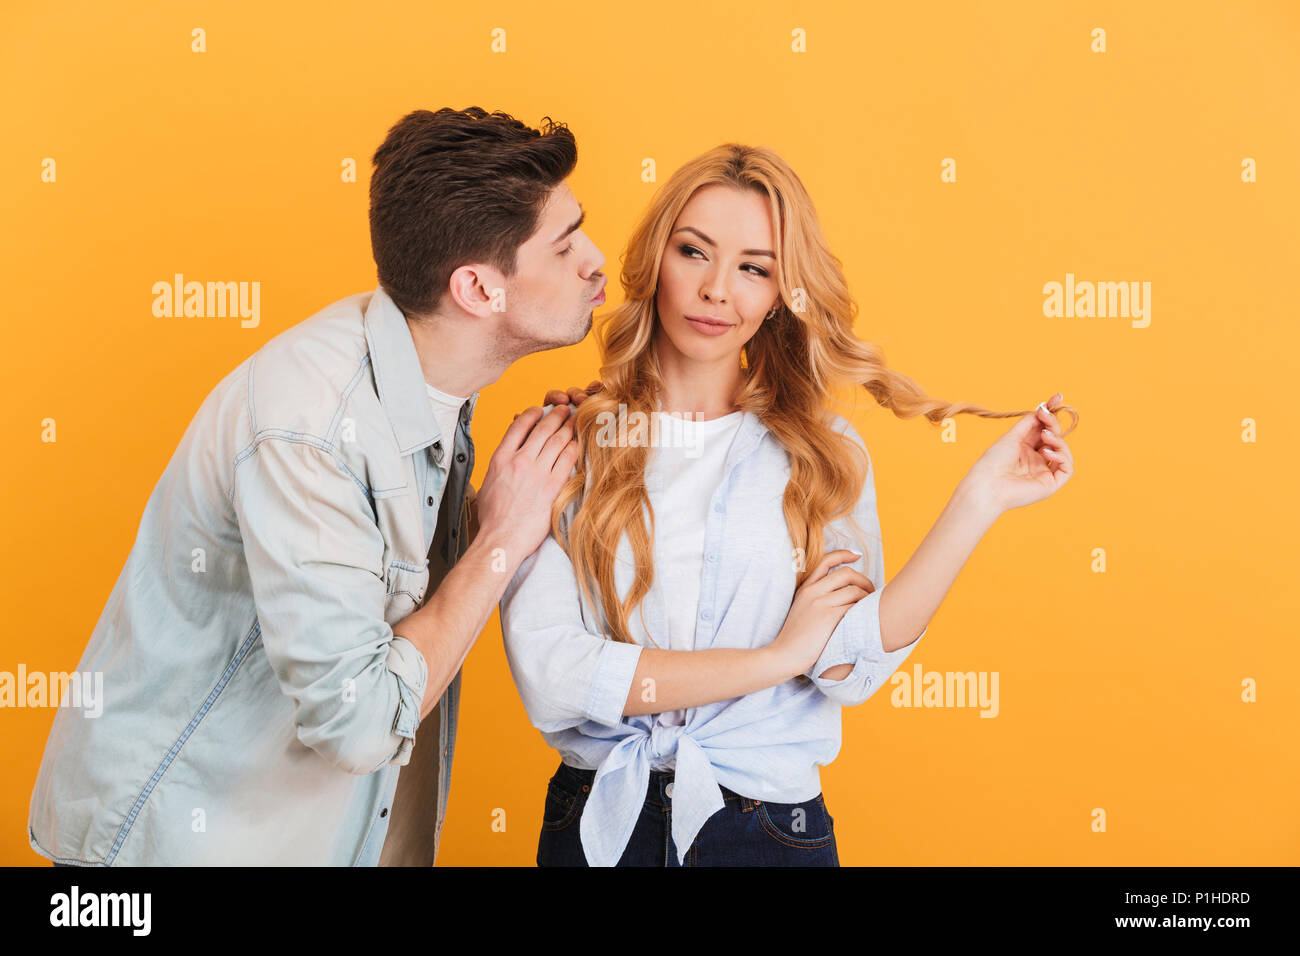 Portrait of charming woman looking aside and hesitating while man trying to kiss her cheek isolated over yellow background - Stock Image